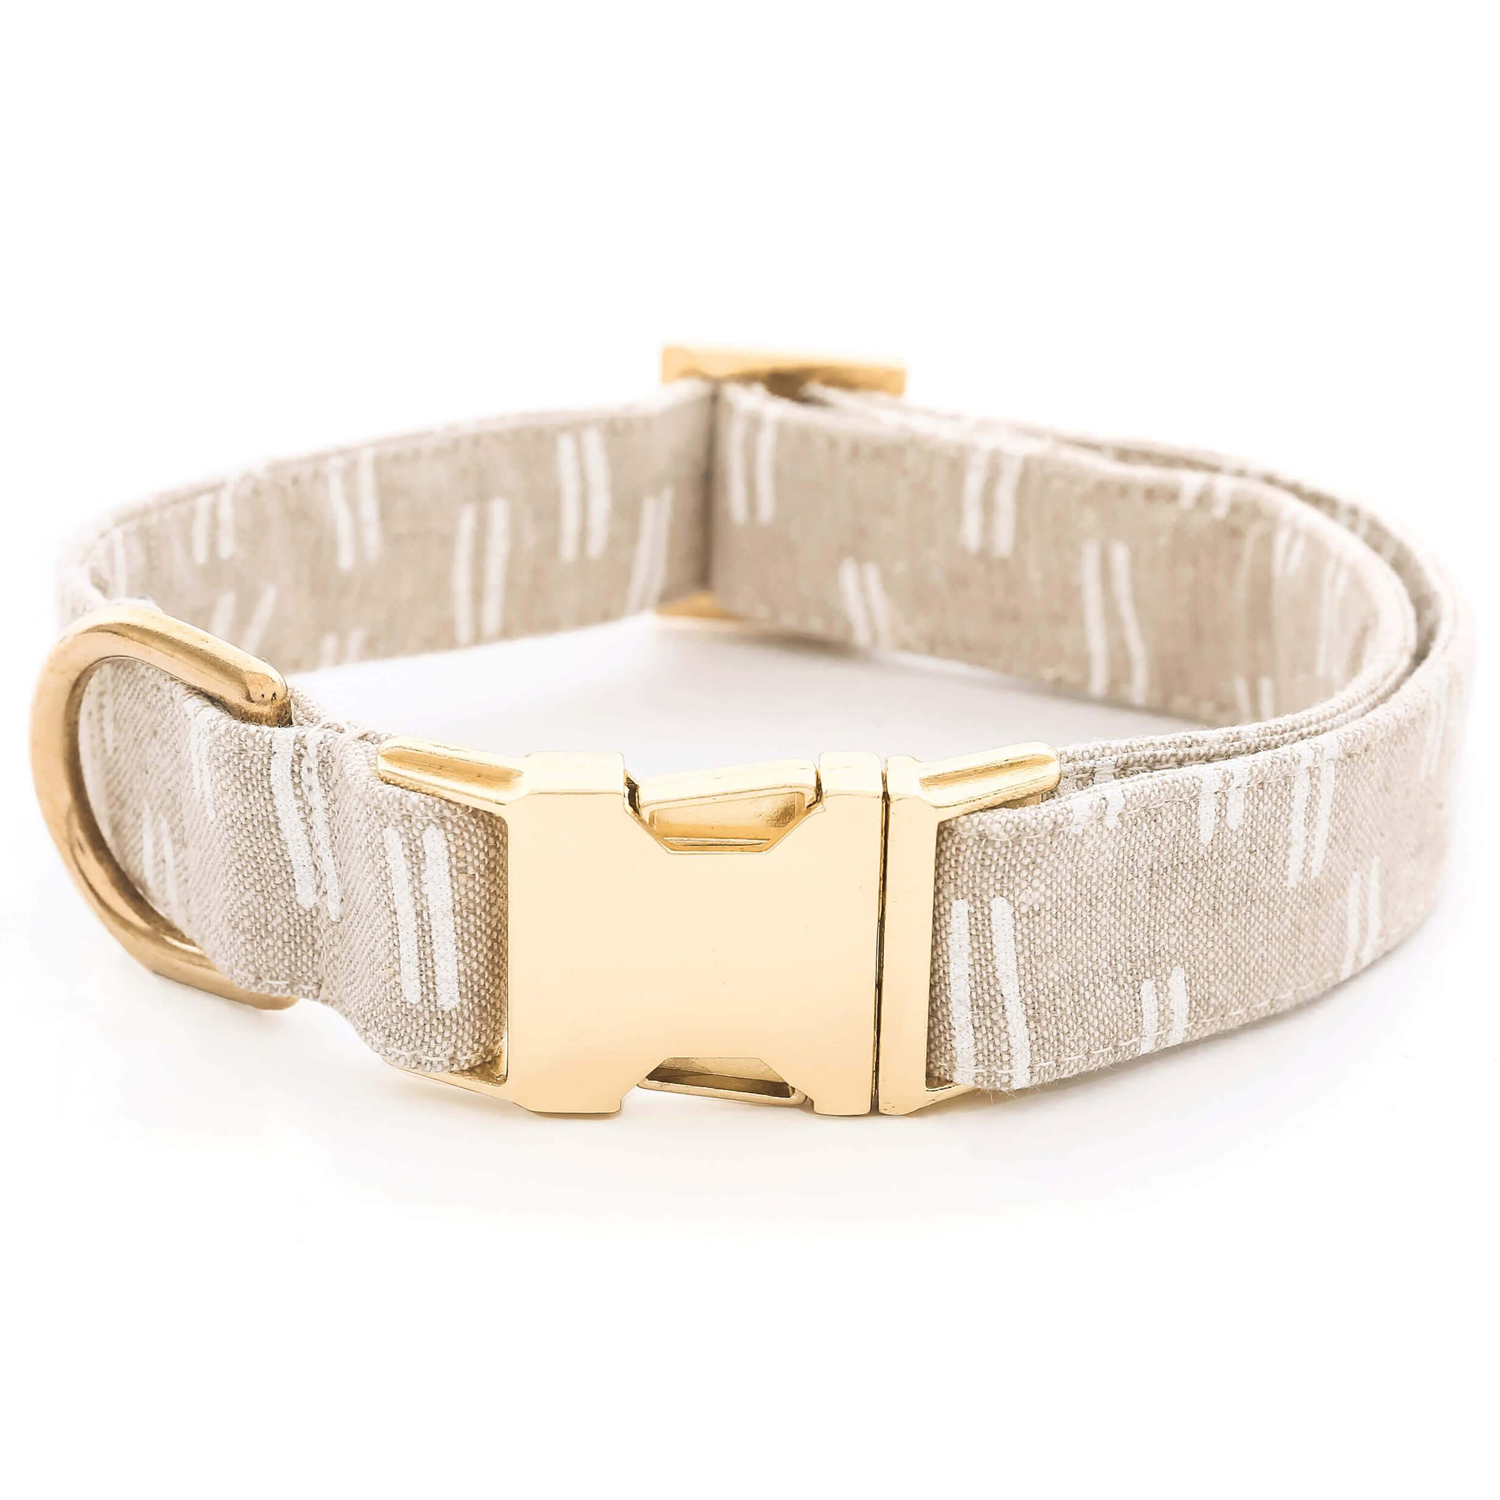 Flax Lines Dog Collar